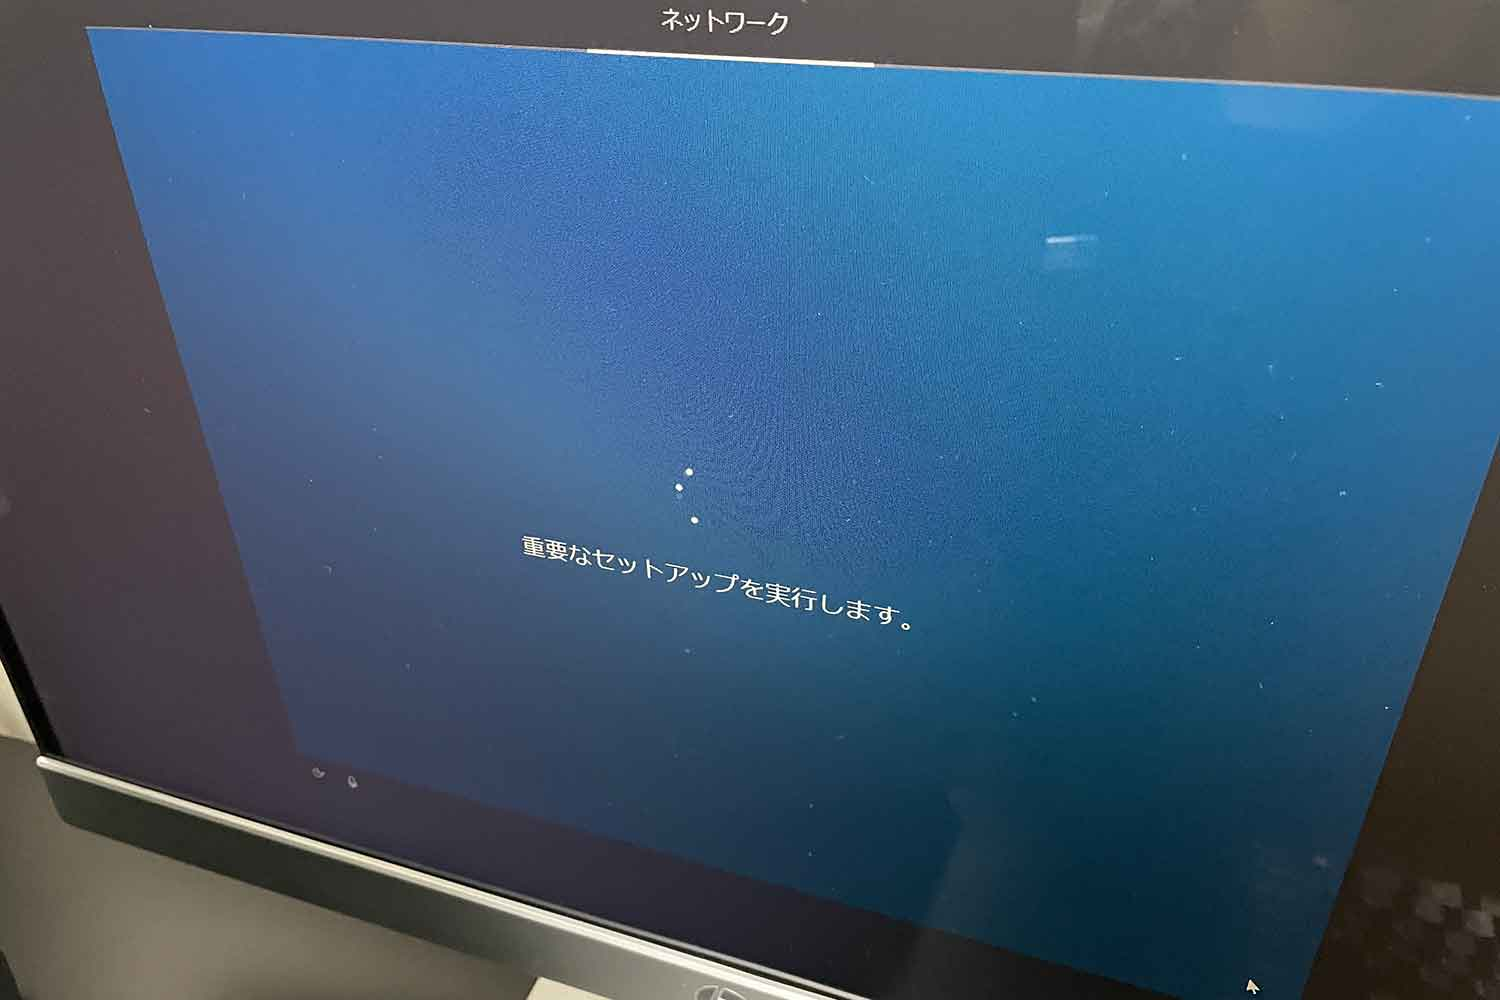 windows10 Pro 初期セットアップ 重要なセットアップを実行します。